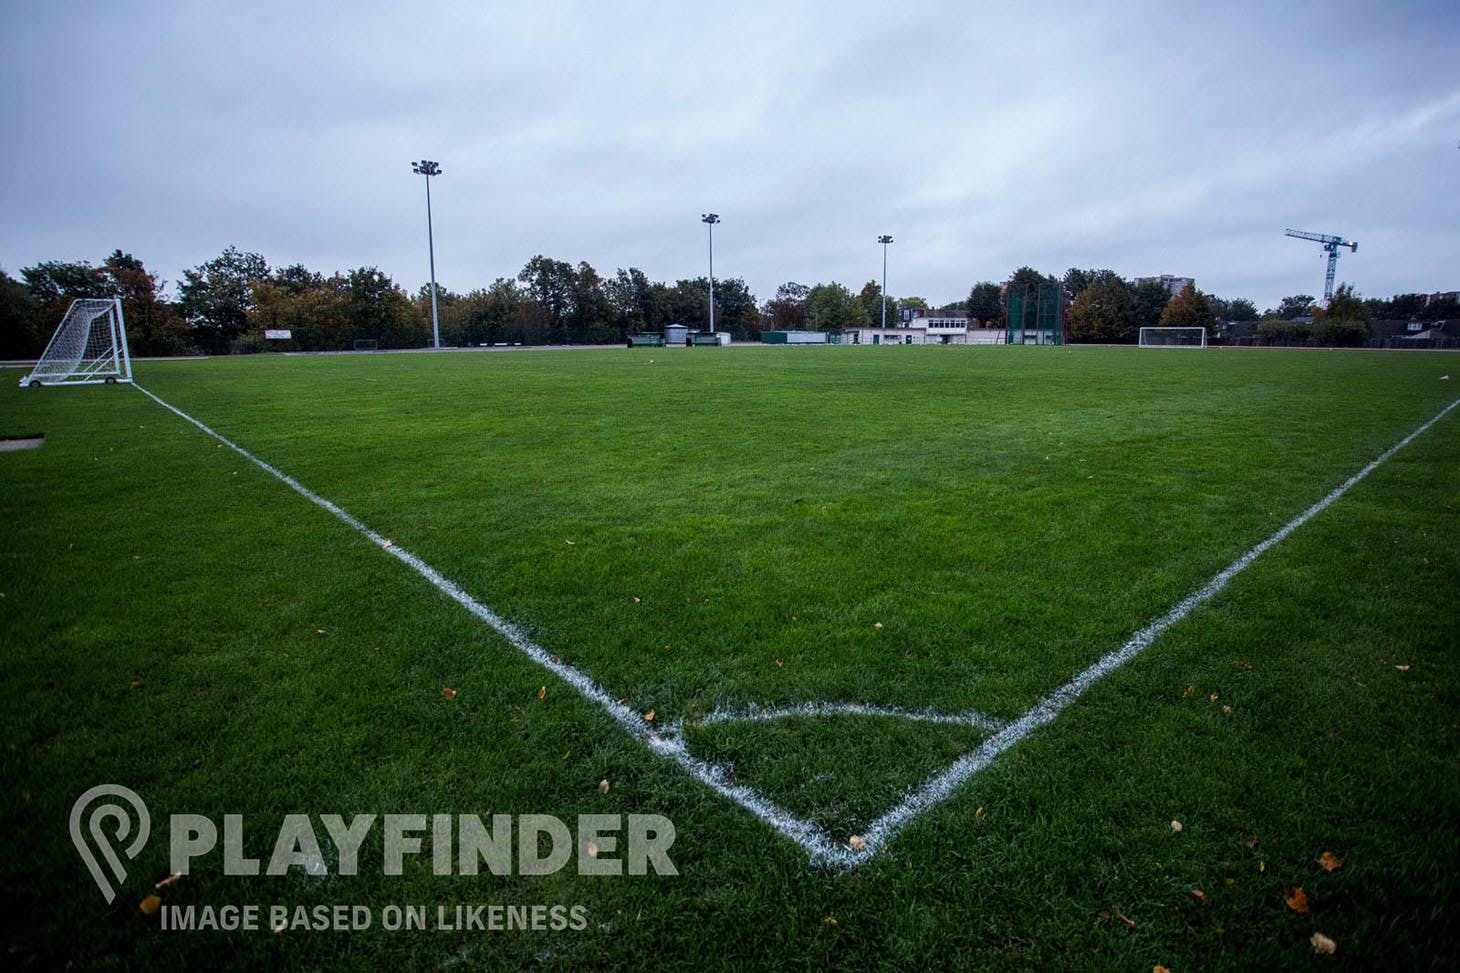 King George V Park 11 a side | Grass football pitch